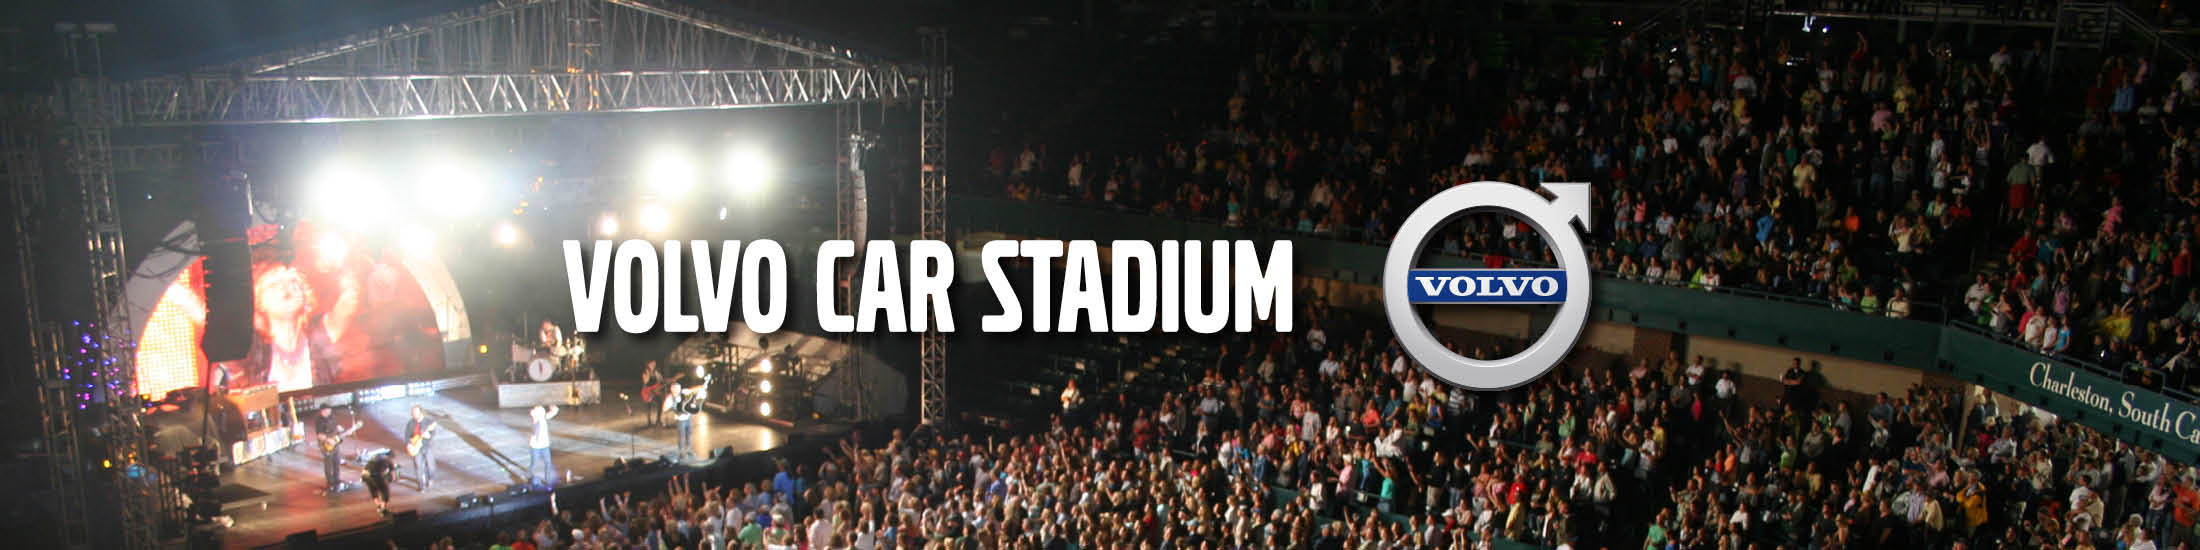 Volvo Car Stadium Concert Series